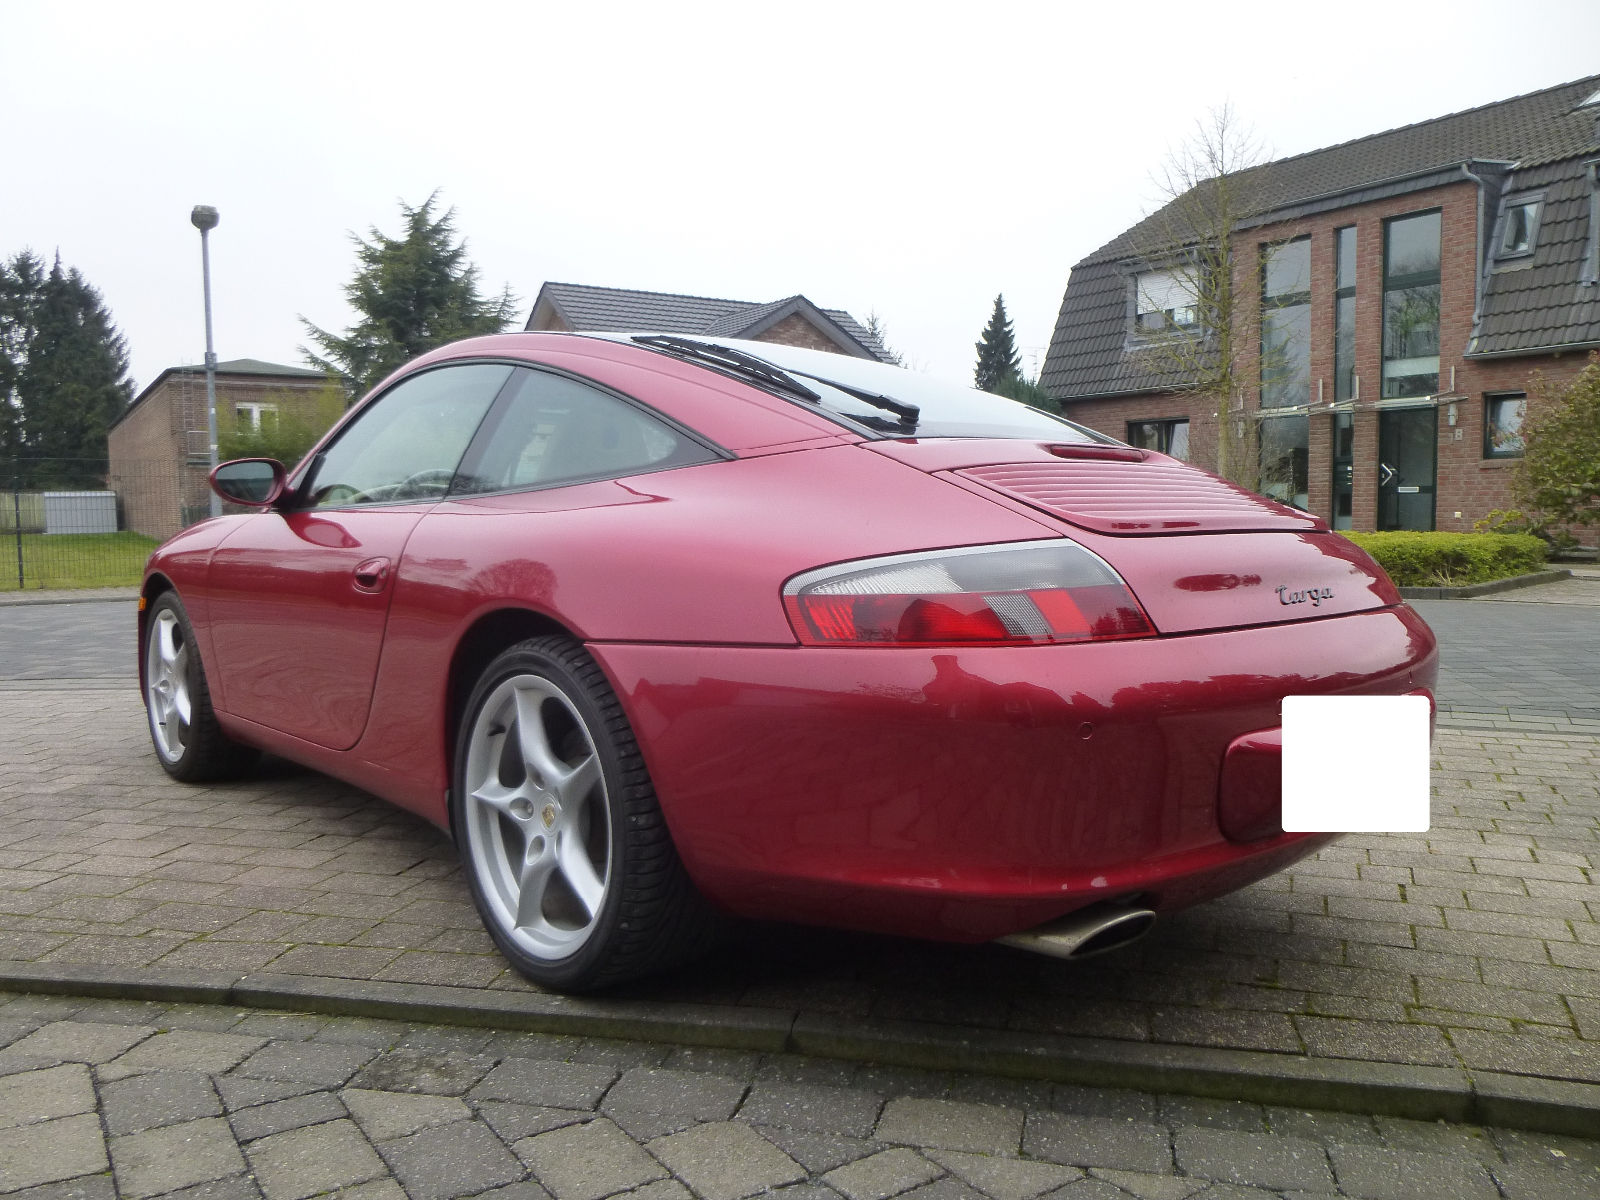 PORSCHE 911 996 (07/2003) - RED METALLIC - lieu: